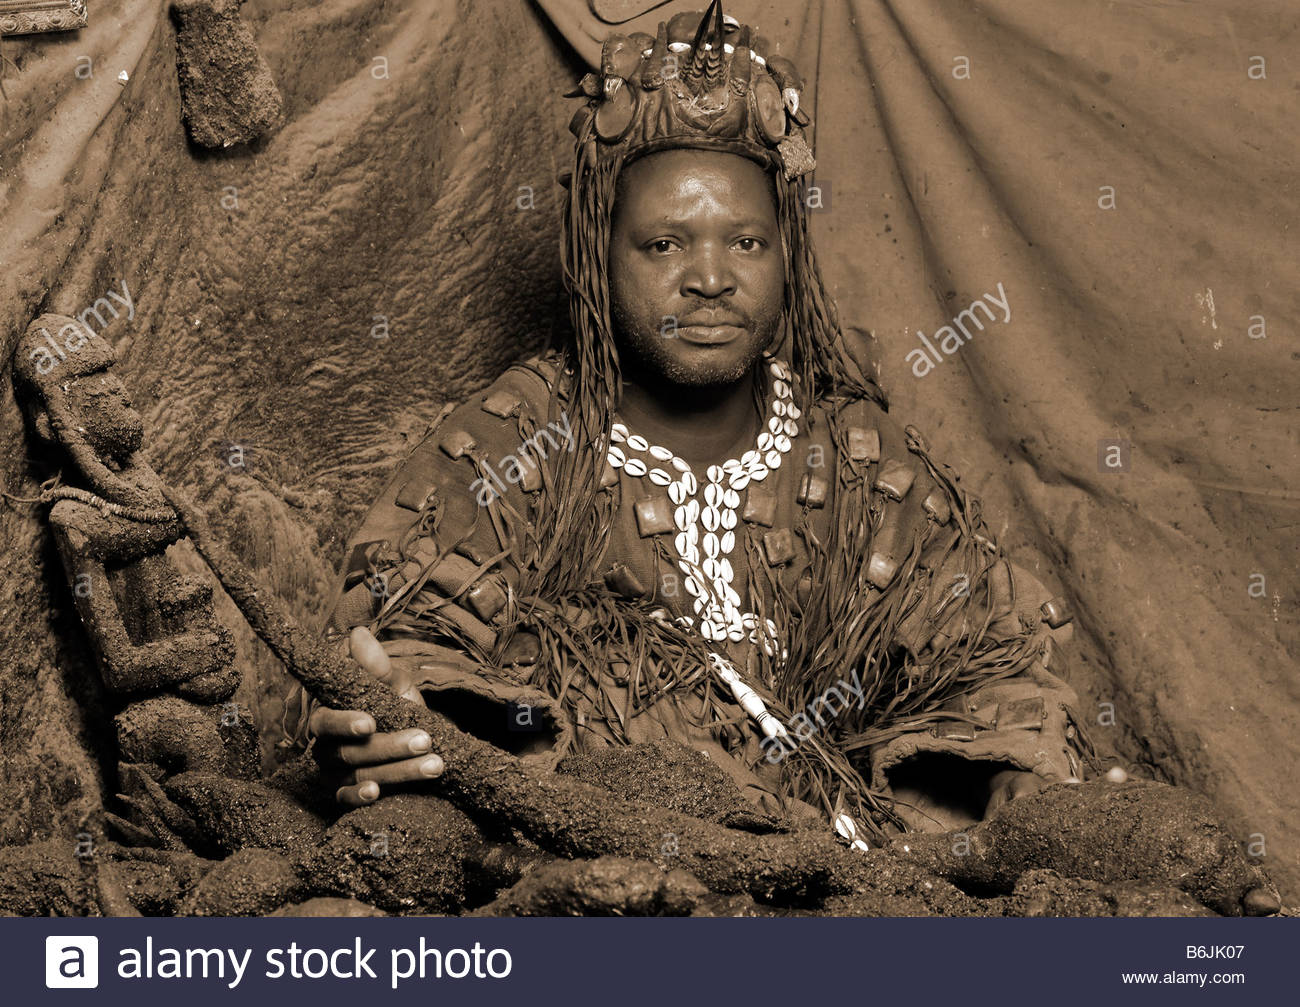 Voodoo Witch Doctor Stock Photos & Voodoo Witch Doctor Stock